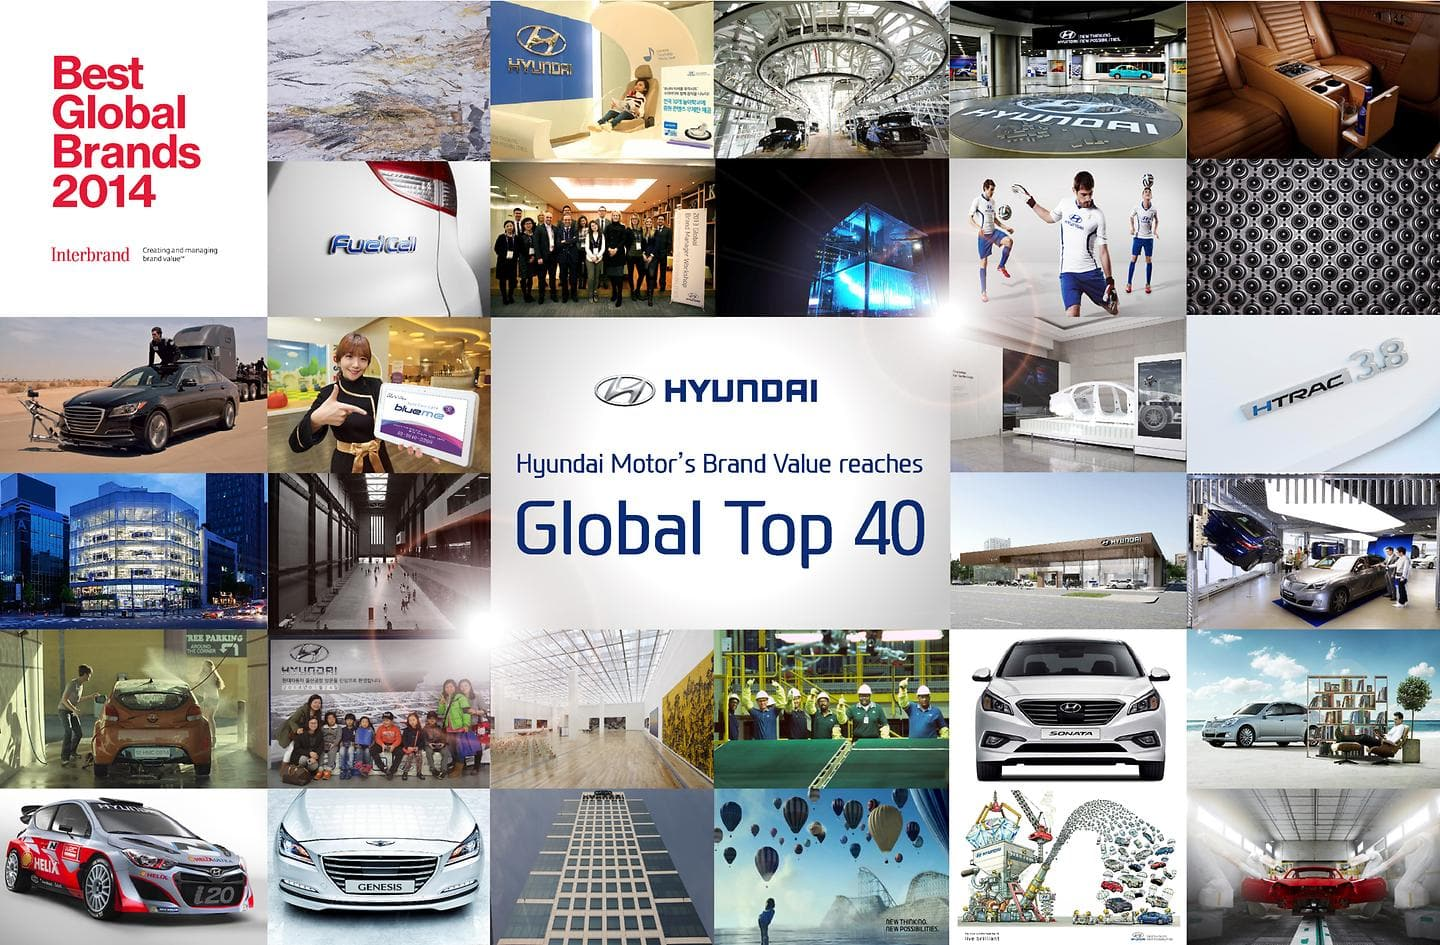 Hyundai Motor's Brand Value Reaches Global Top 40 Highest Ever